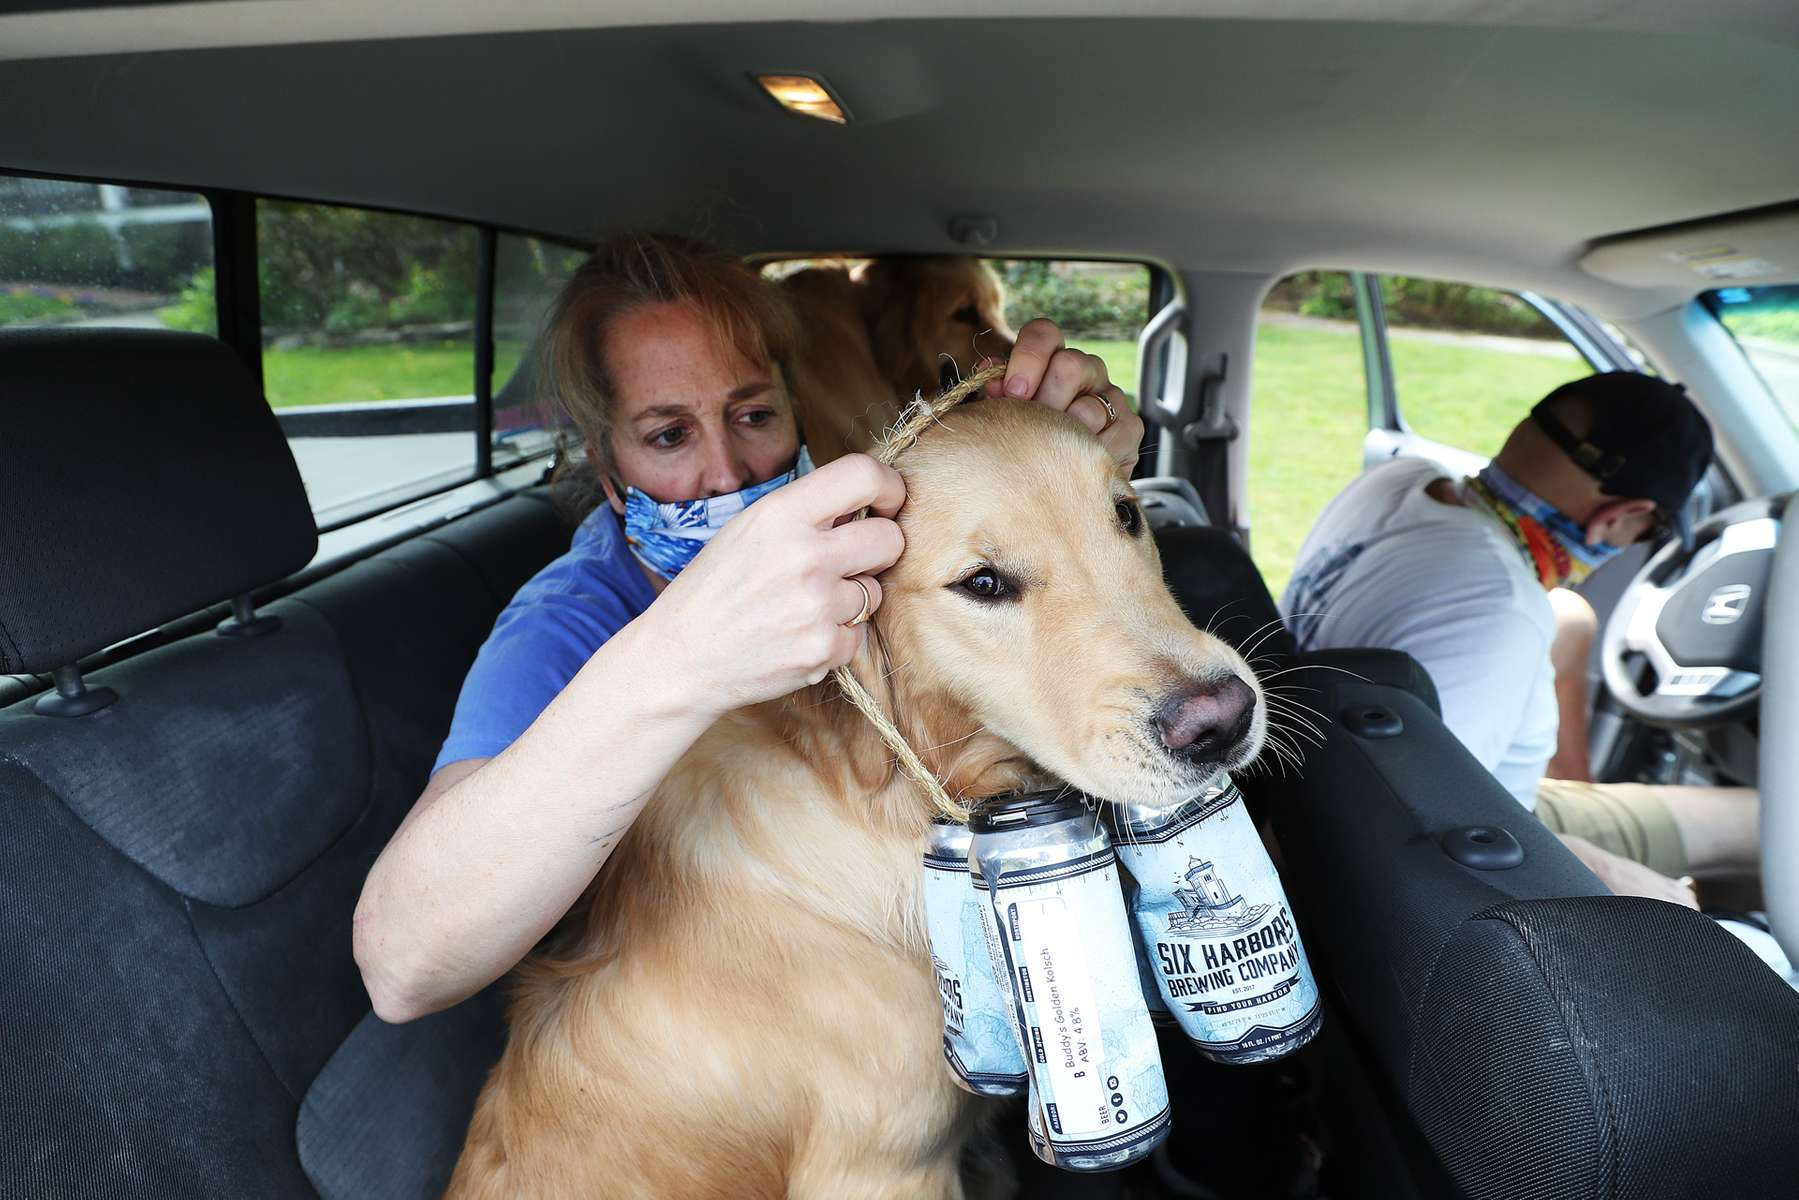 Mark and Karen Heuwetter fit their two dogs Buddy and Barley with an empty four pack of beer cans before a delivery to their customers on May 03, 2020 in Huntington Village, New York.  Mark and Karen Heuwetter own the Six Harbors Brewery and have trained their two Golden Retrievers Buddy and Barley to help them deliver beer to their customers during the coronavirus COVID-19 pandemic.  The dogs are fitted with a four pack of empty beer cans around their necks and meet customers at their doorstep while Mark and Karen carry the beer to deliver behind them.  It has been comforting for the dogs who are enjoying the exercise and meeting people along the way.  The customers love seeing Buddy and Barley and enjoy petting and greeting them to go with their beer delivery.